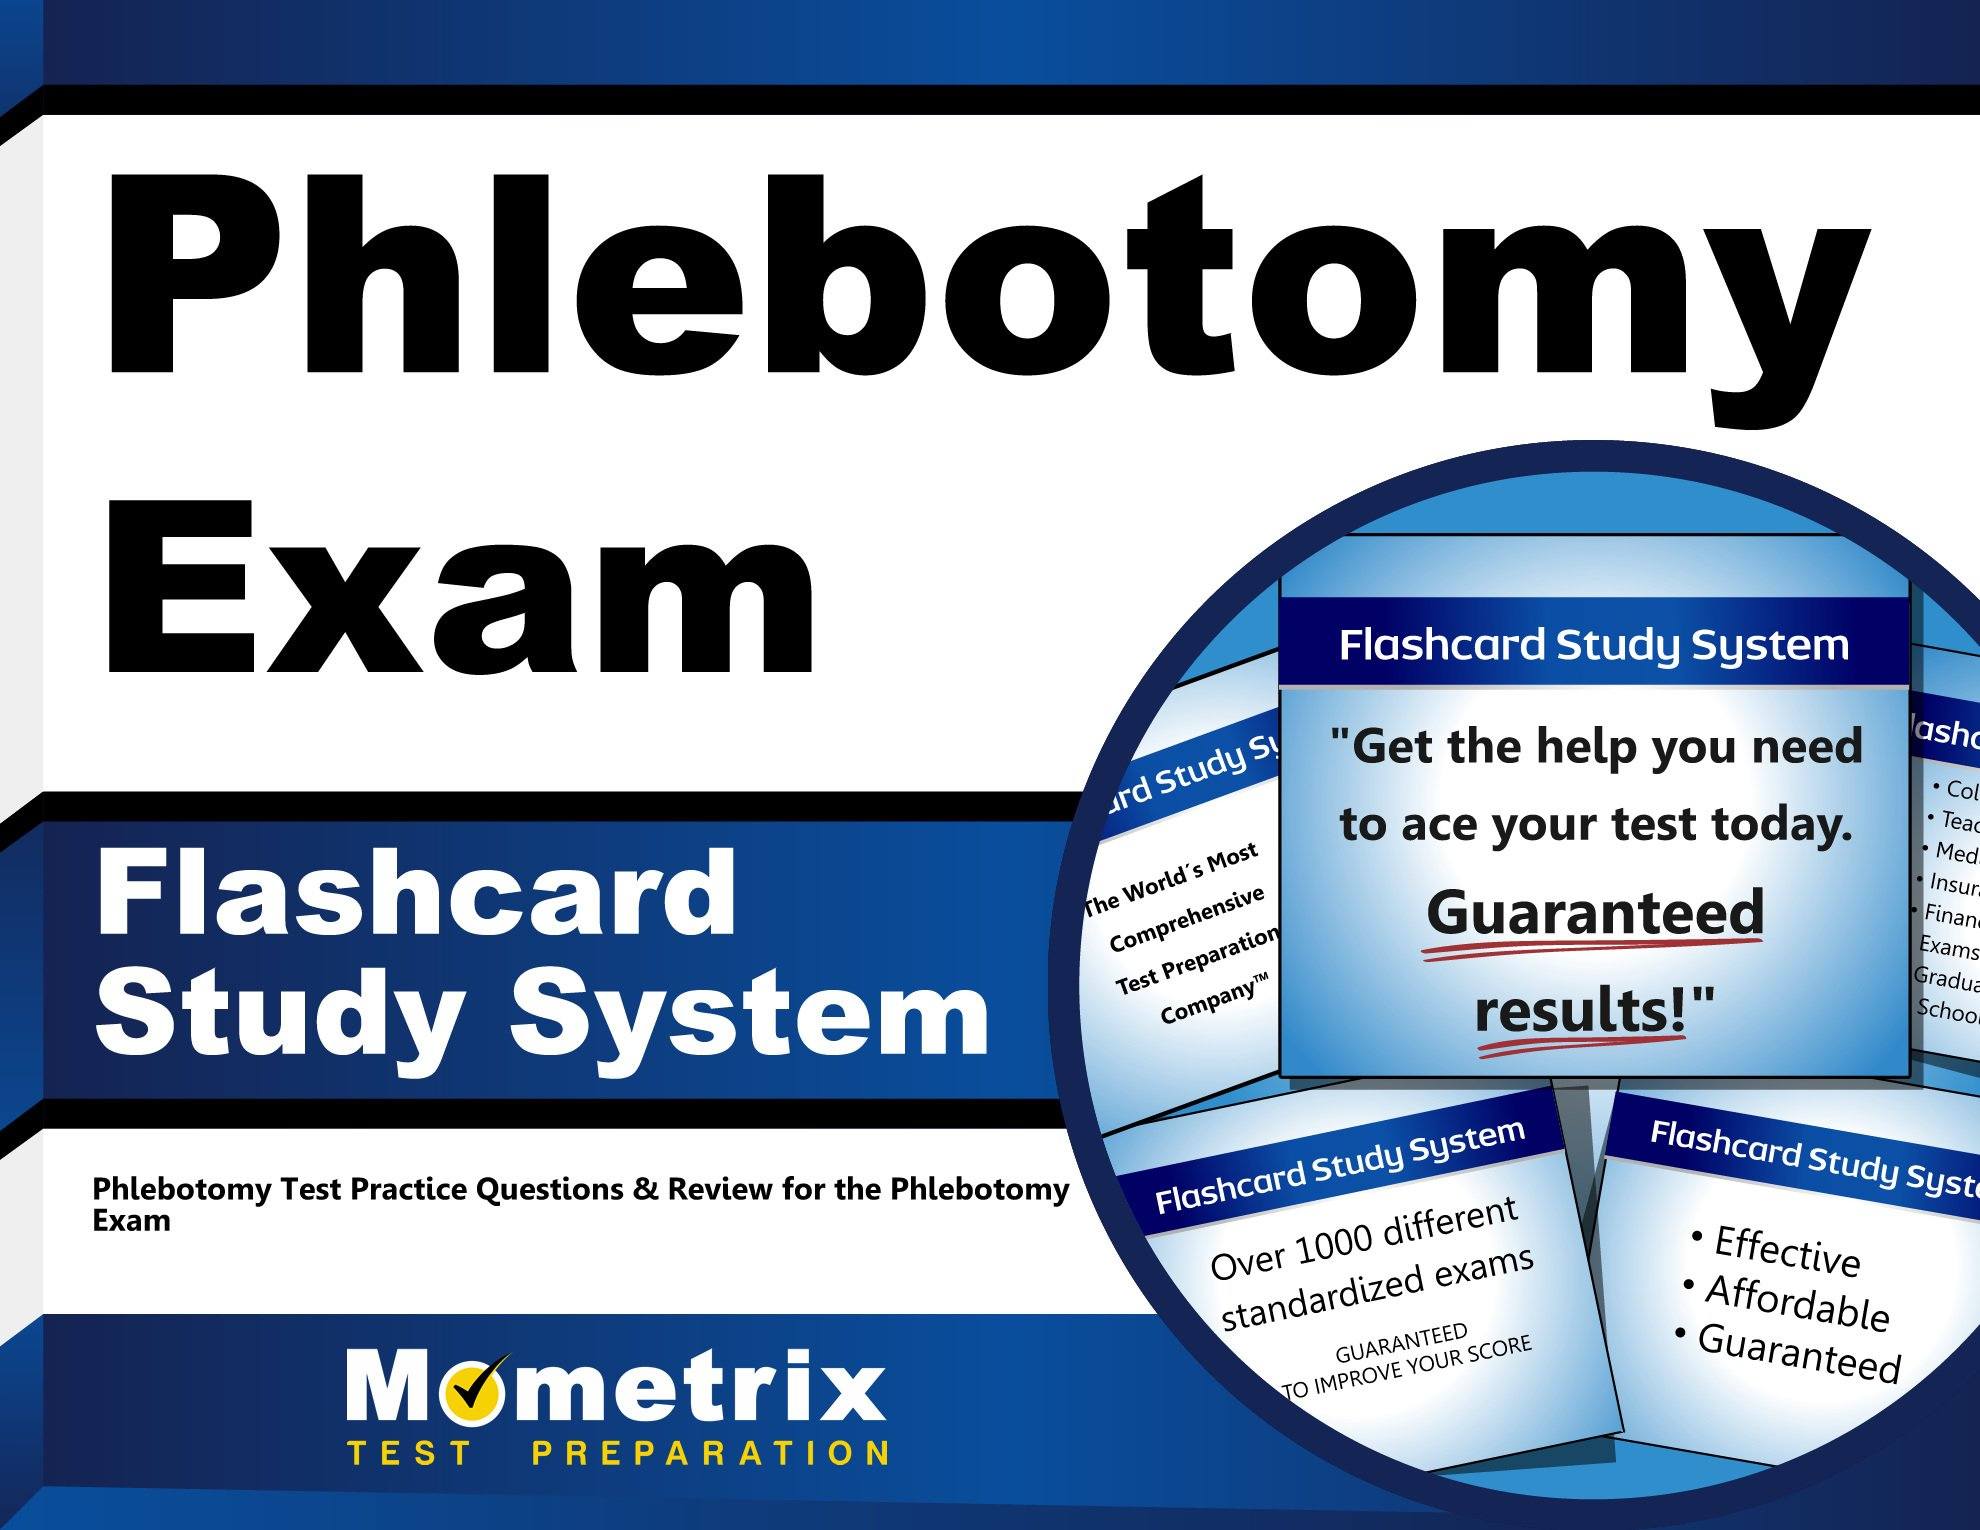 Phlebotomy Exam Flashcard Study System Test Practice Questions And Review For The Cards Mar 31 2014